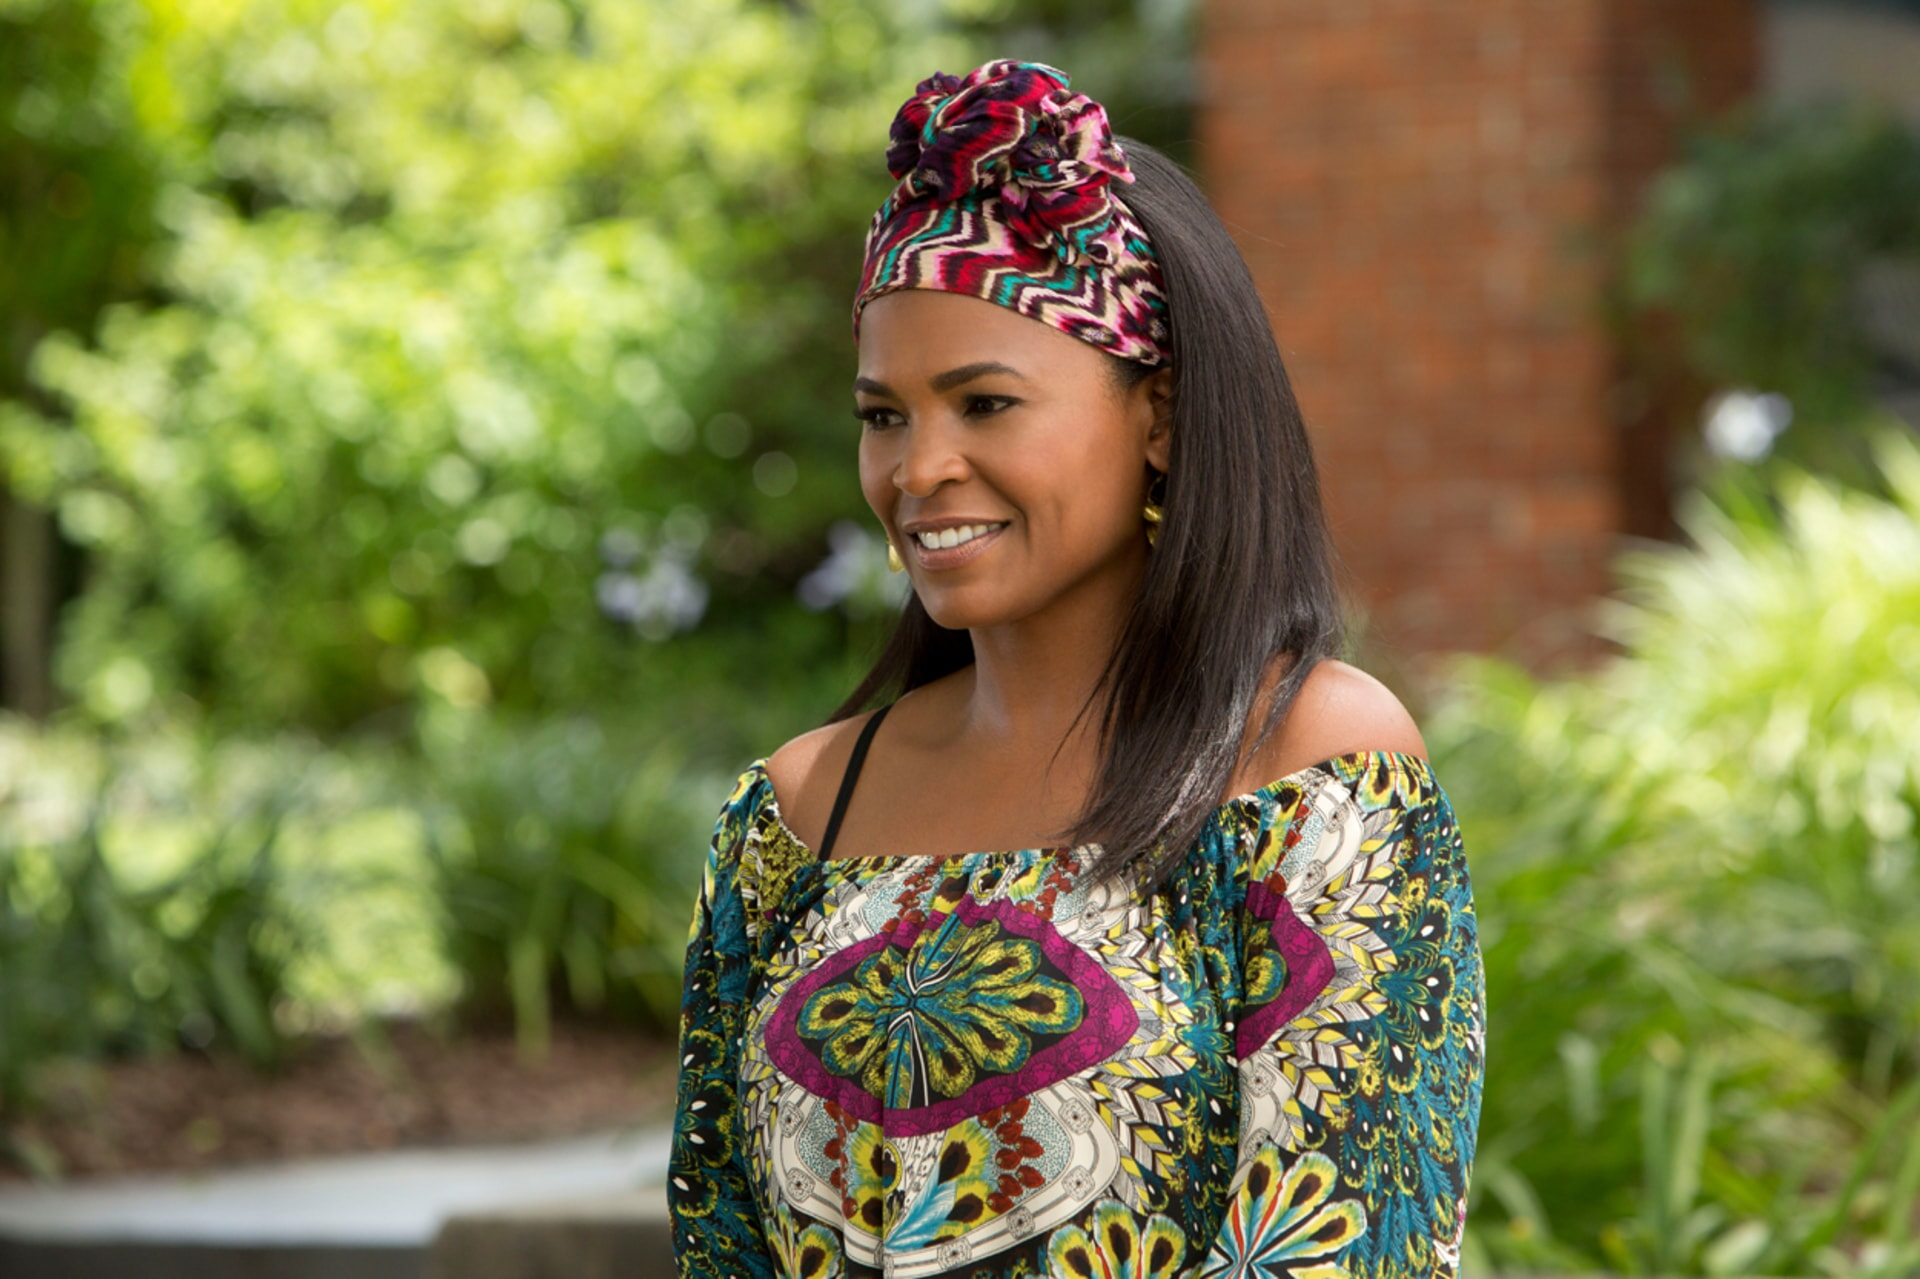 NIA LONG as Hannah wearing a printed headscarf and top